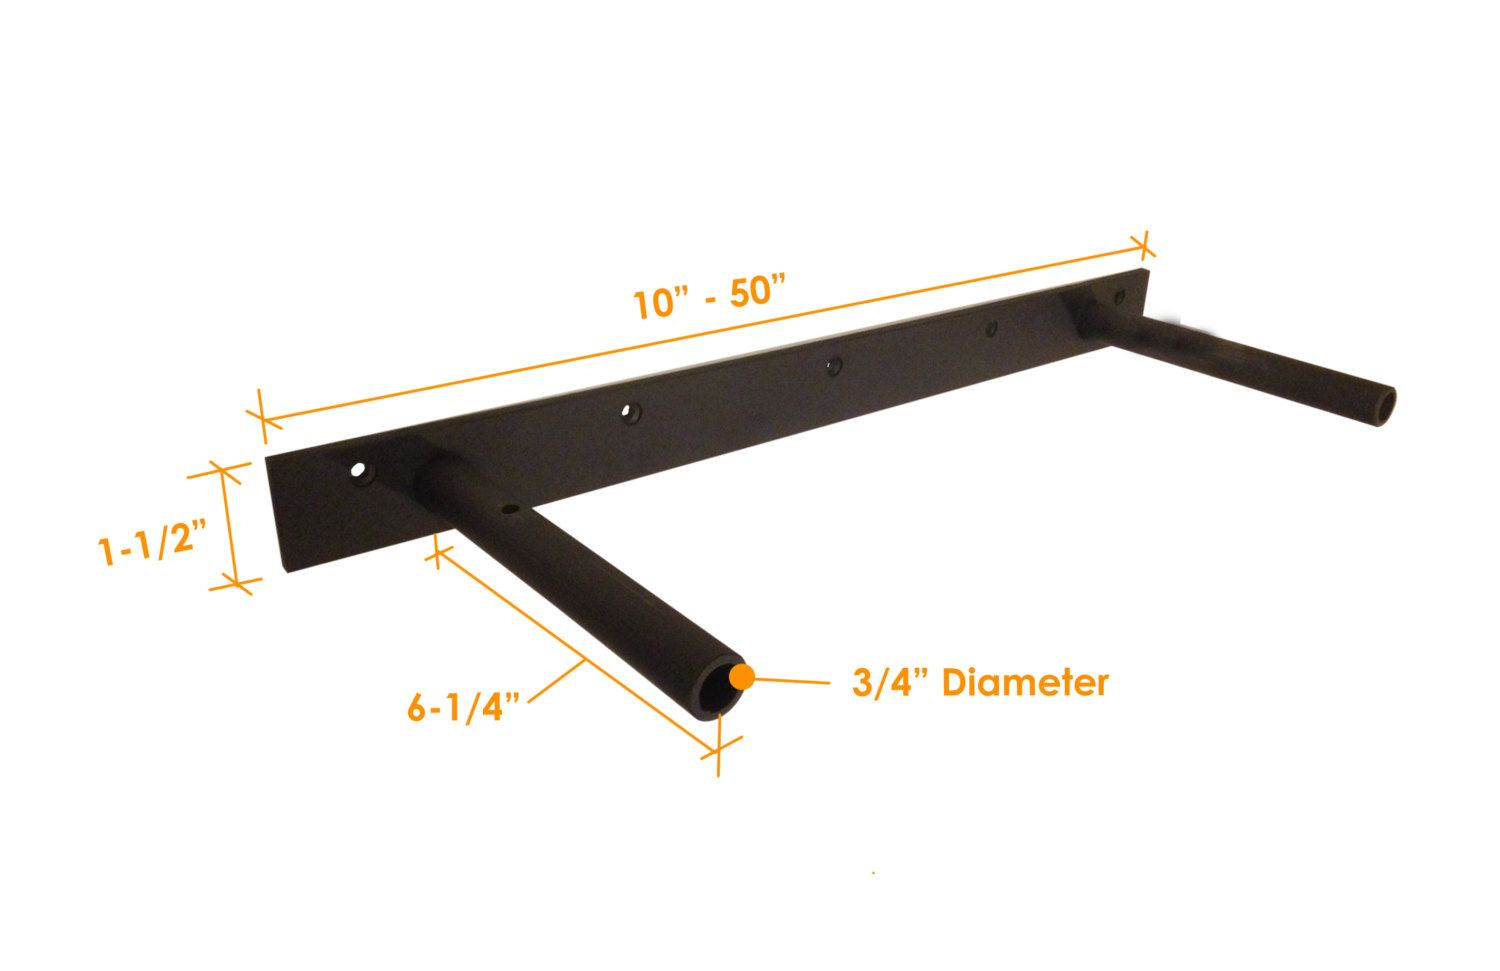 floating shelf brackets steel heavy duty from supports hidden bracket silicatestudio bookshelf spacing shelving rack kitchen coat candles kmart metal wine for cable box build shoe